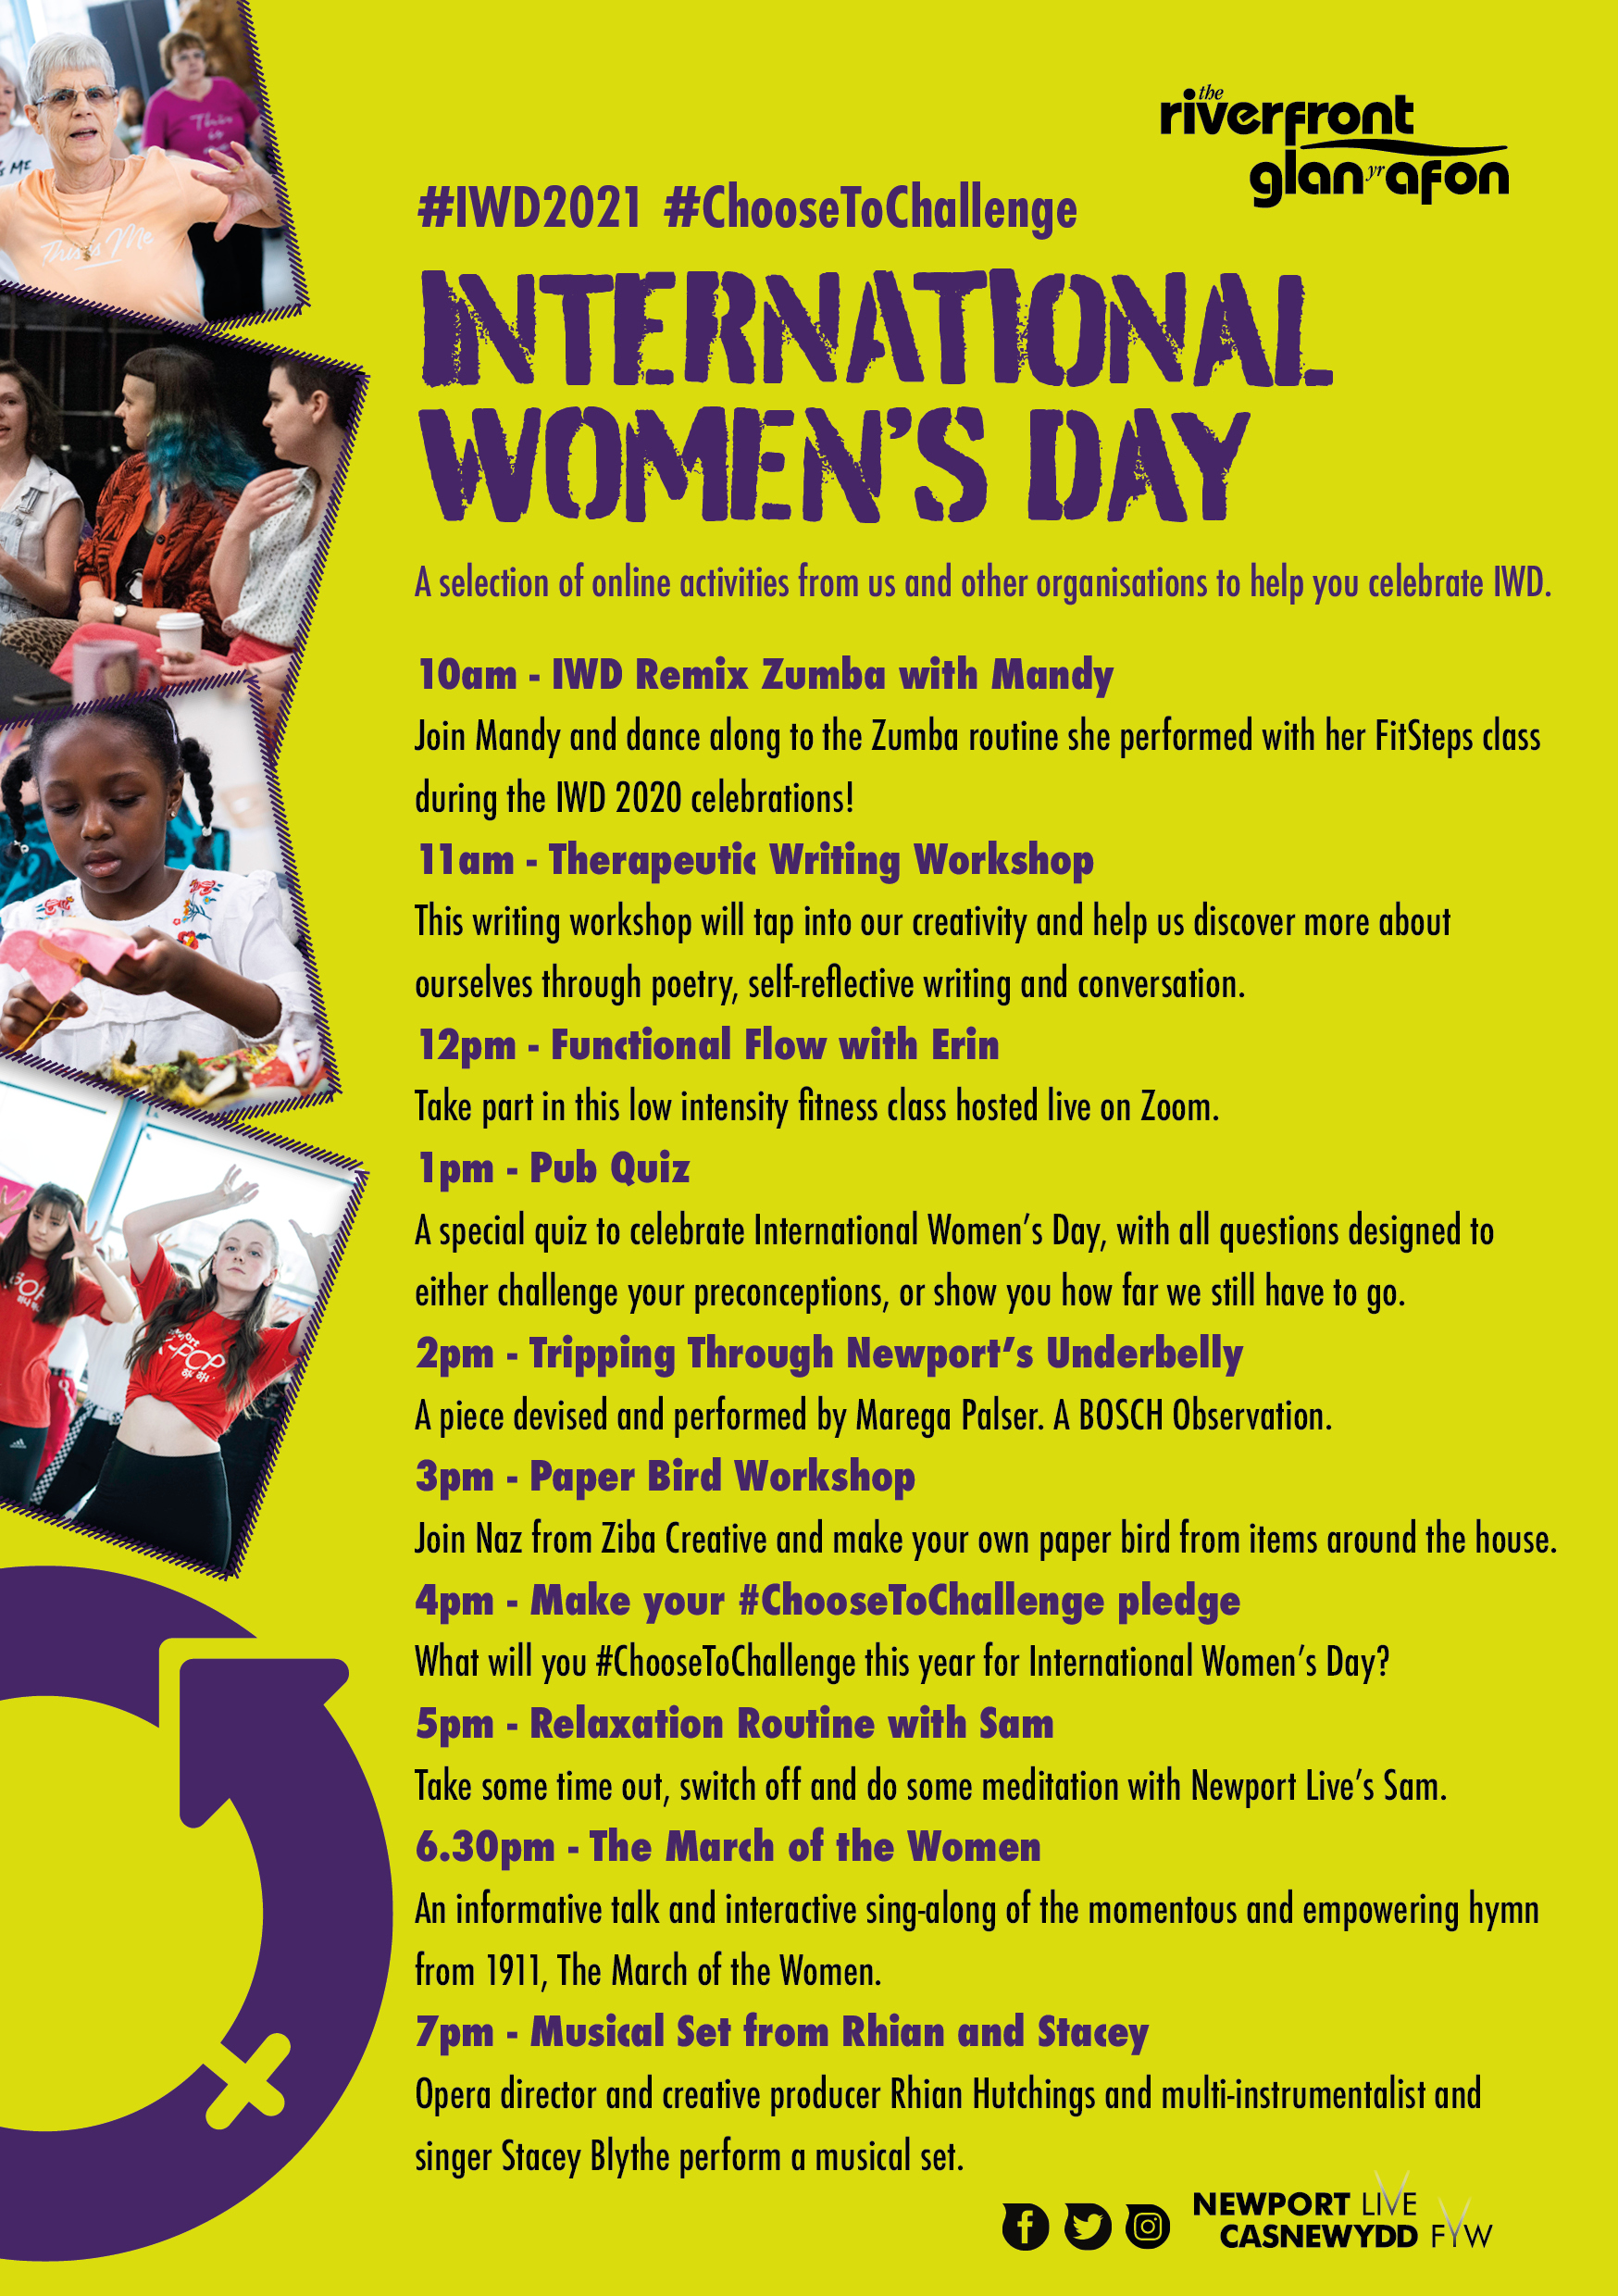 Timetable of activities for International Women's Day 2021